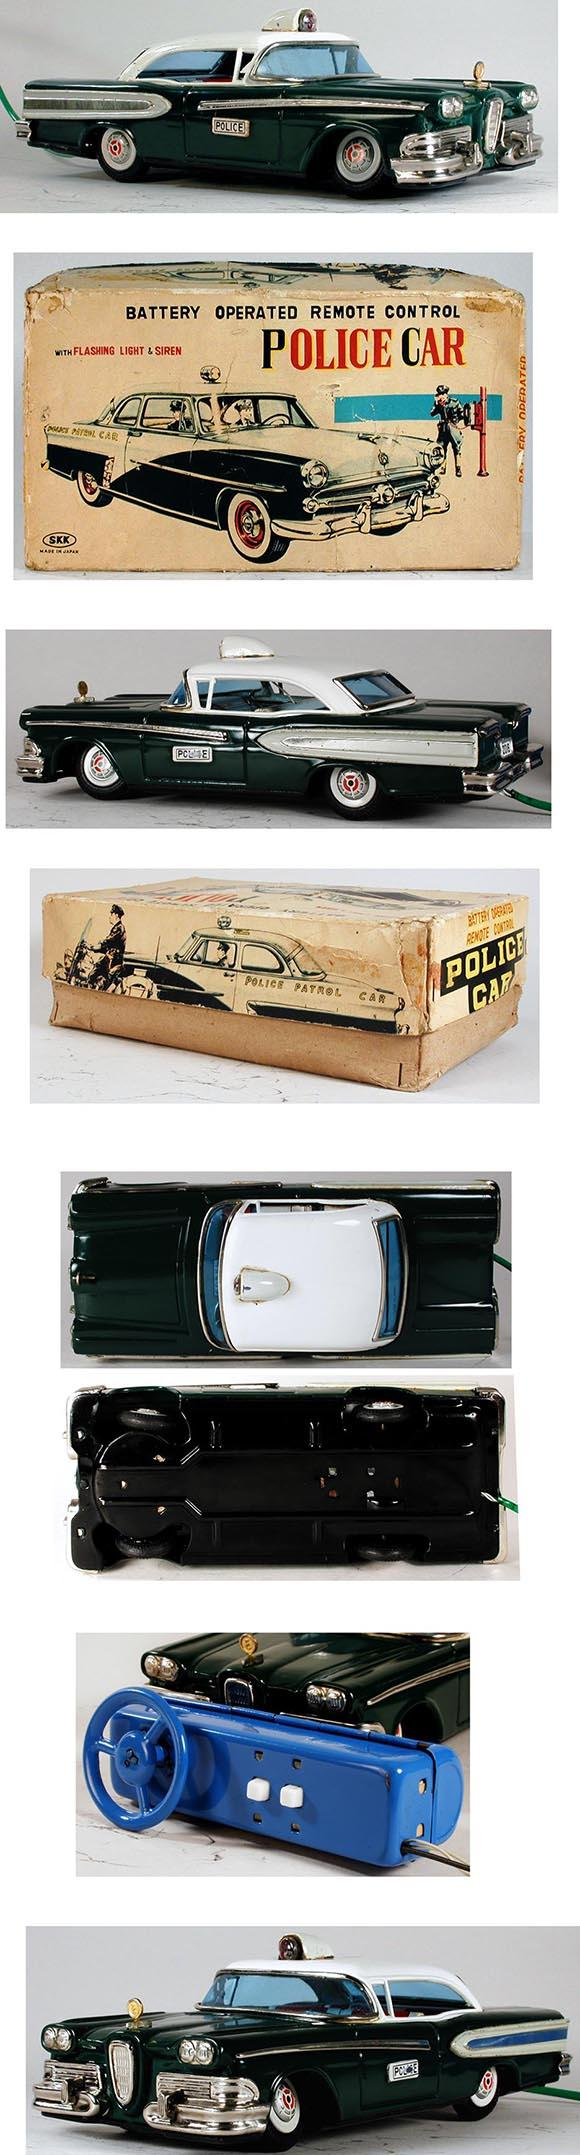 1958 Yonezawa, Remote Control Edsel Police Car in Original Box